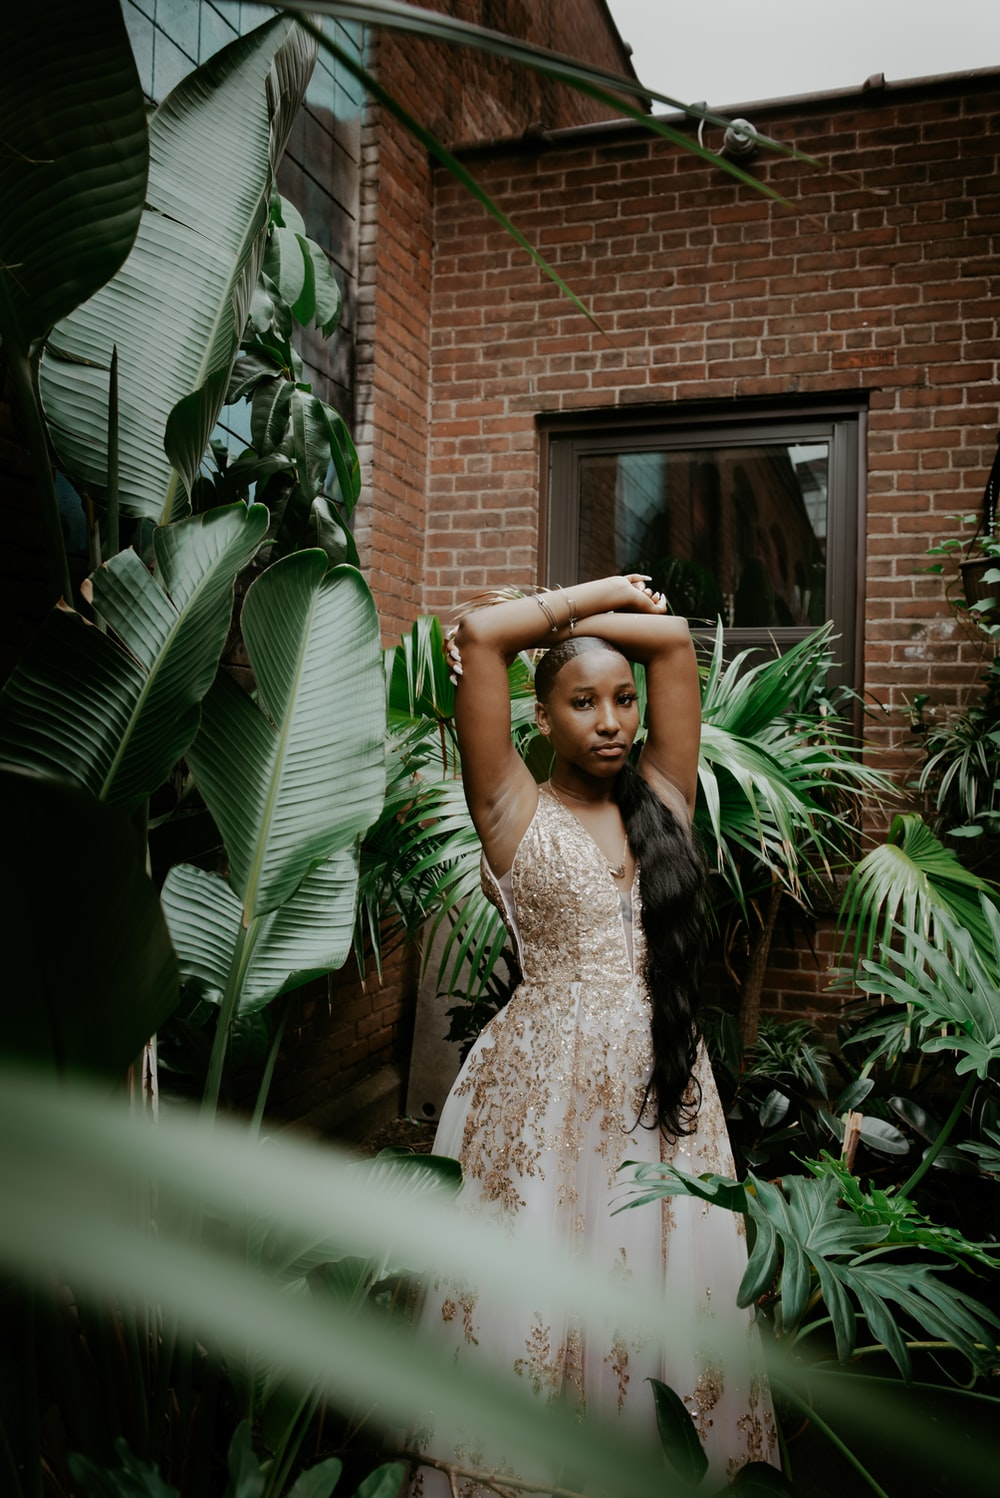 woman in white floral lace dress standing near green plant